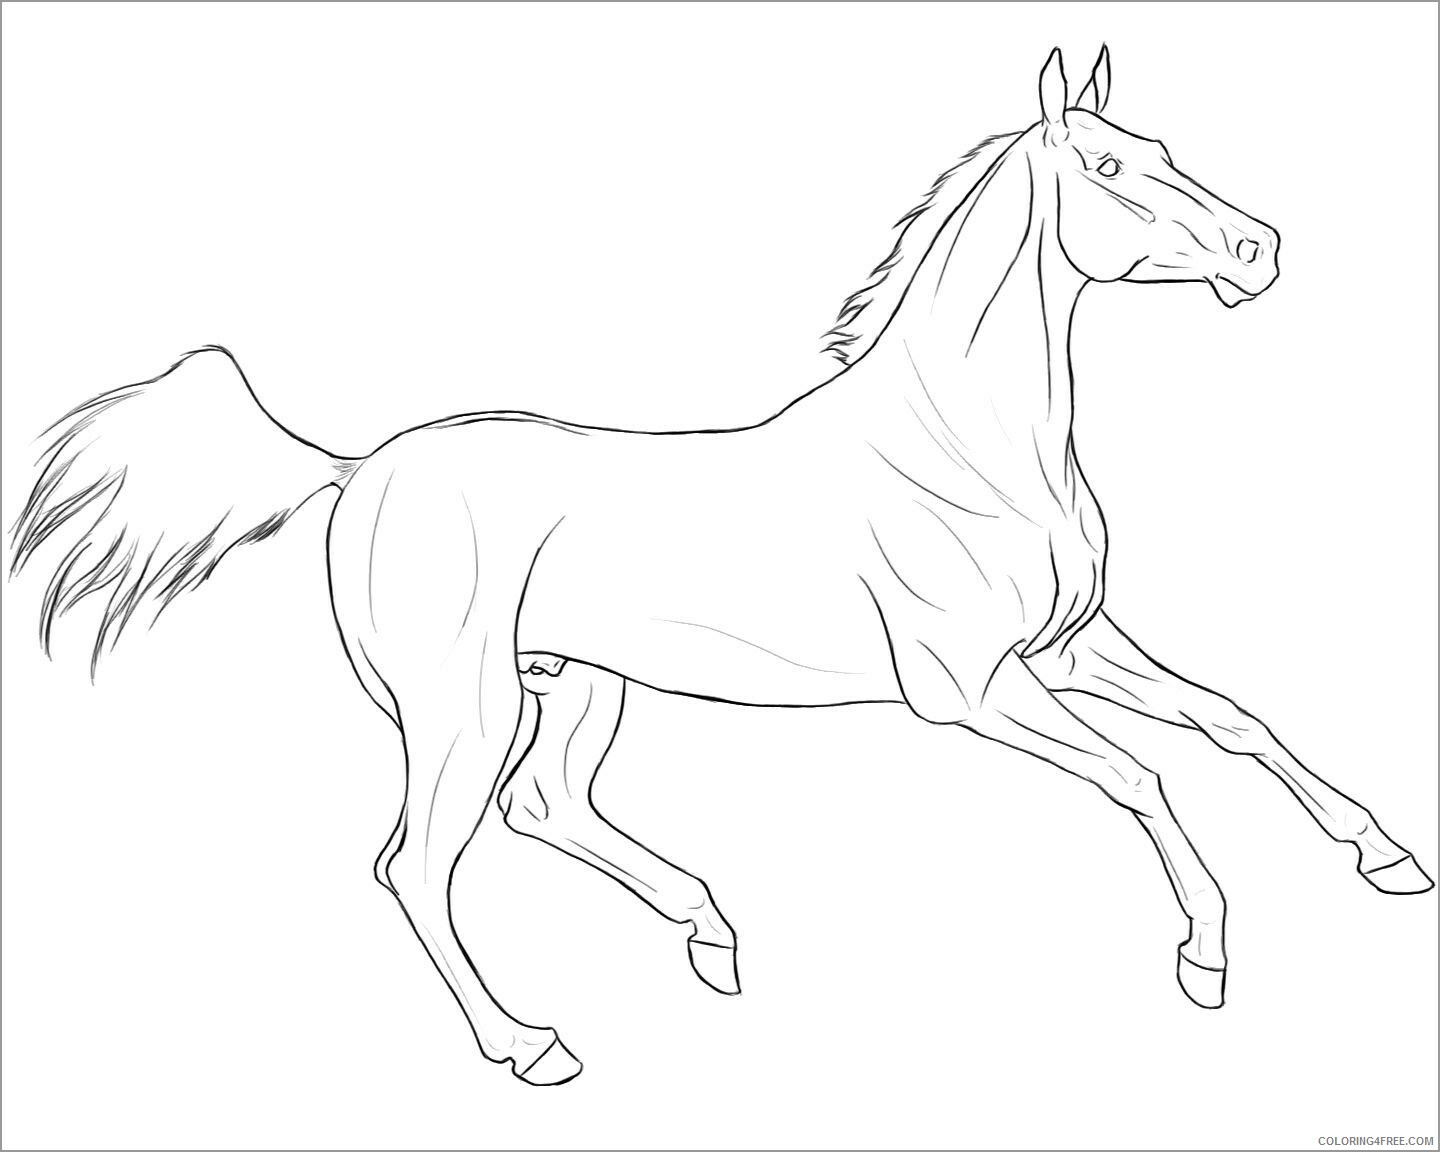 Horses Coloring Pages Animal Printable Sheets lineart 2021 2718 Coloring4free